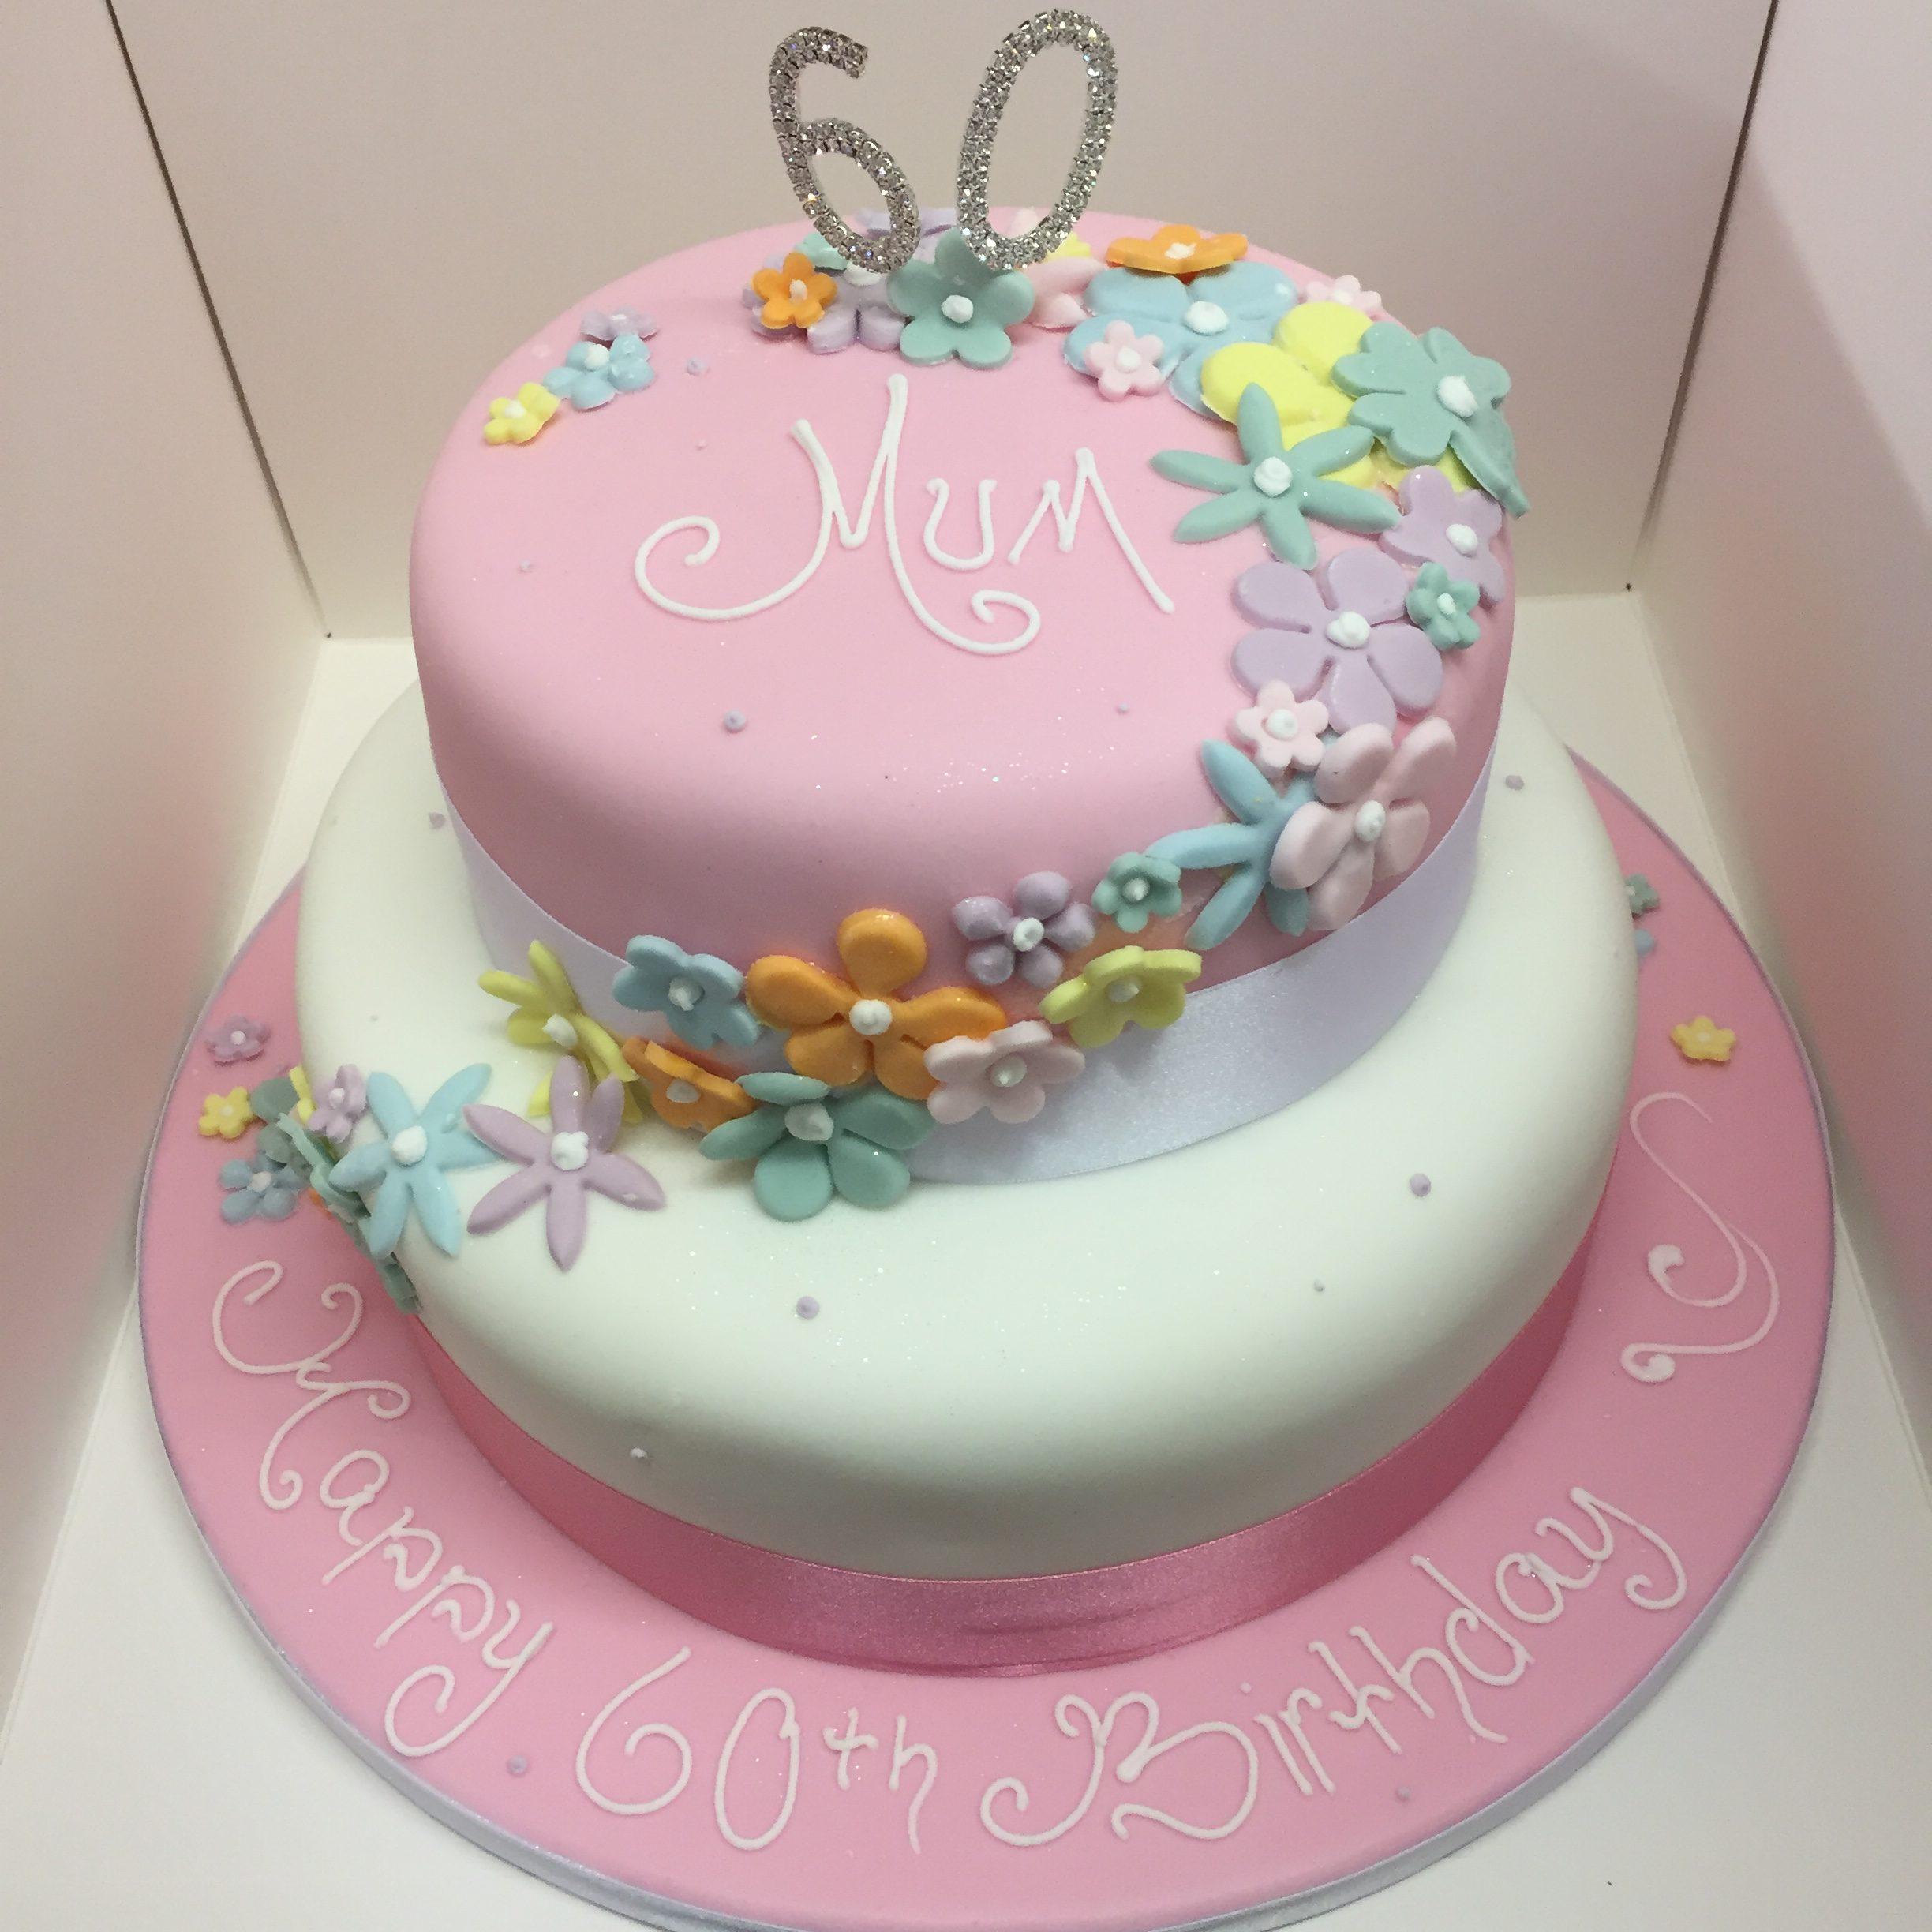 Two Tier Birthday Cake 2 Tier 60th Birthday Cake M Rays Bakery